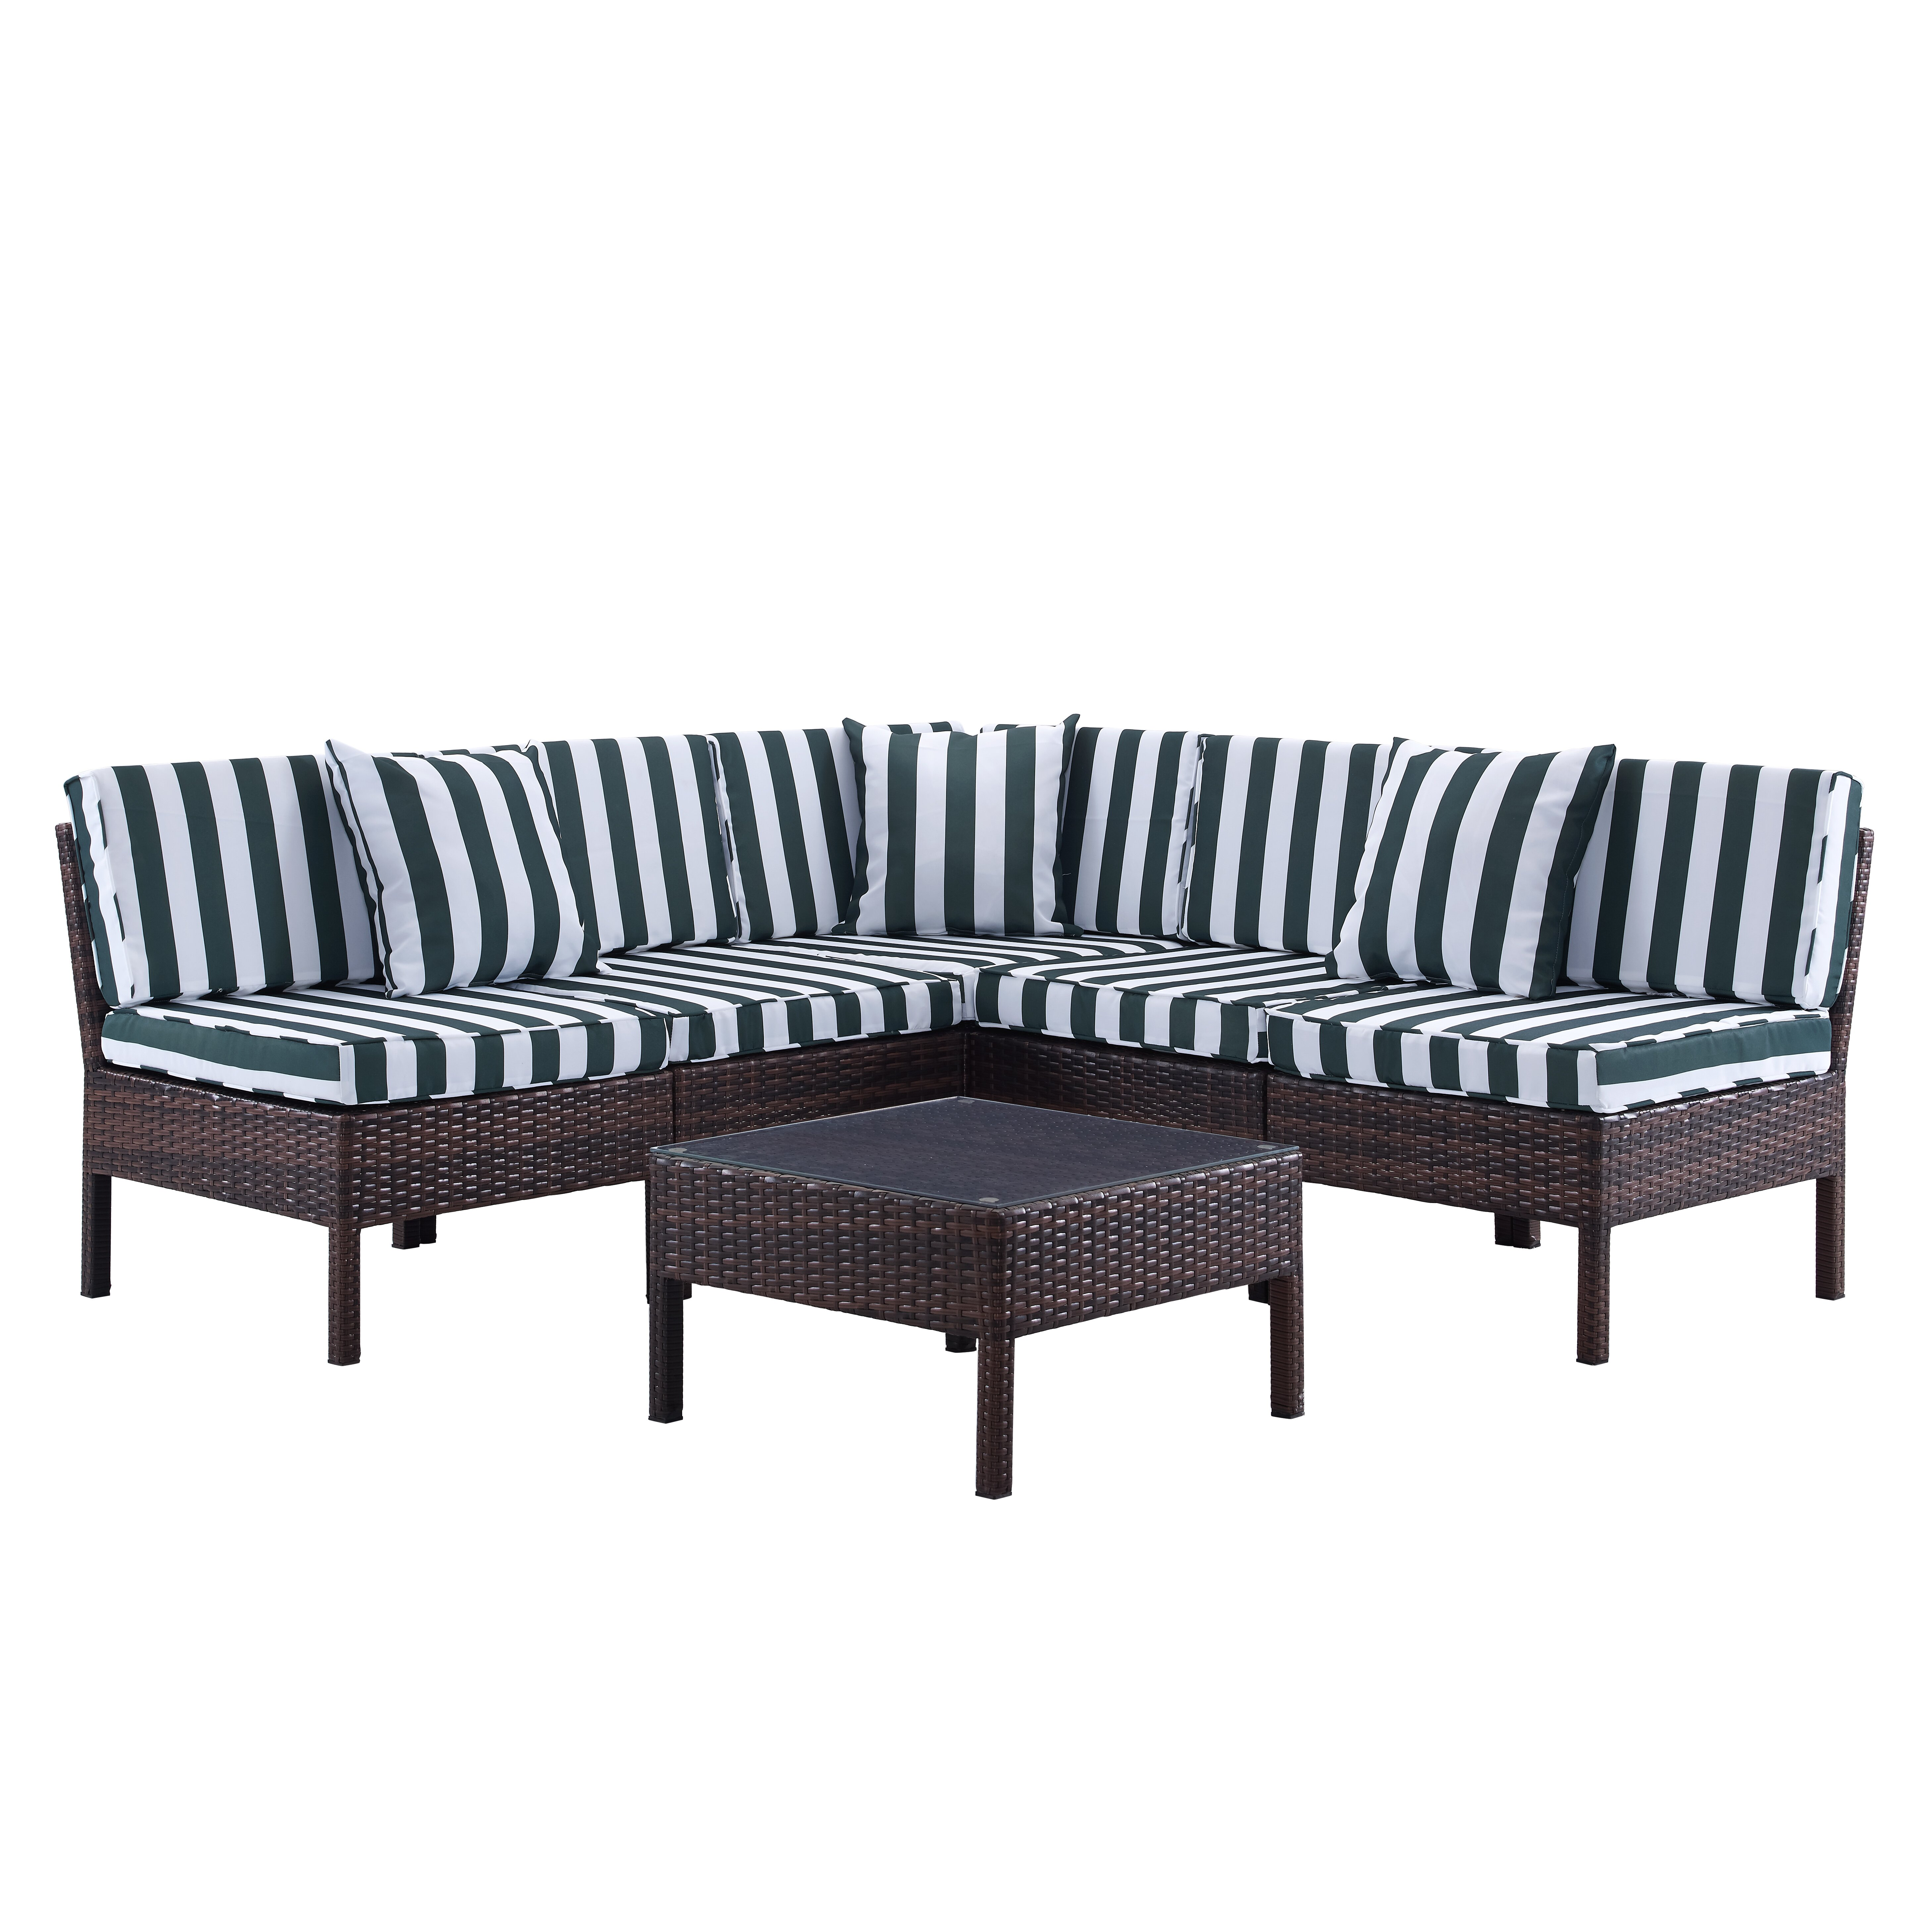 Breakwater Bay Monticello 6 Piece Sectional Seating Group  : Naples2B62BPiece2BDeep2BSeating2BGroup2Bwith2BCushion from www.wayfair.com size 5833 x 5833 jpeg 2486kB